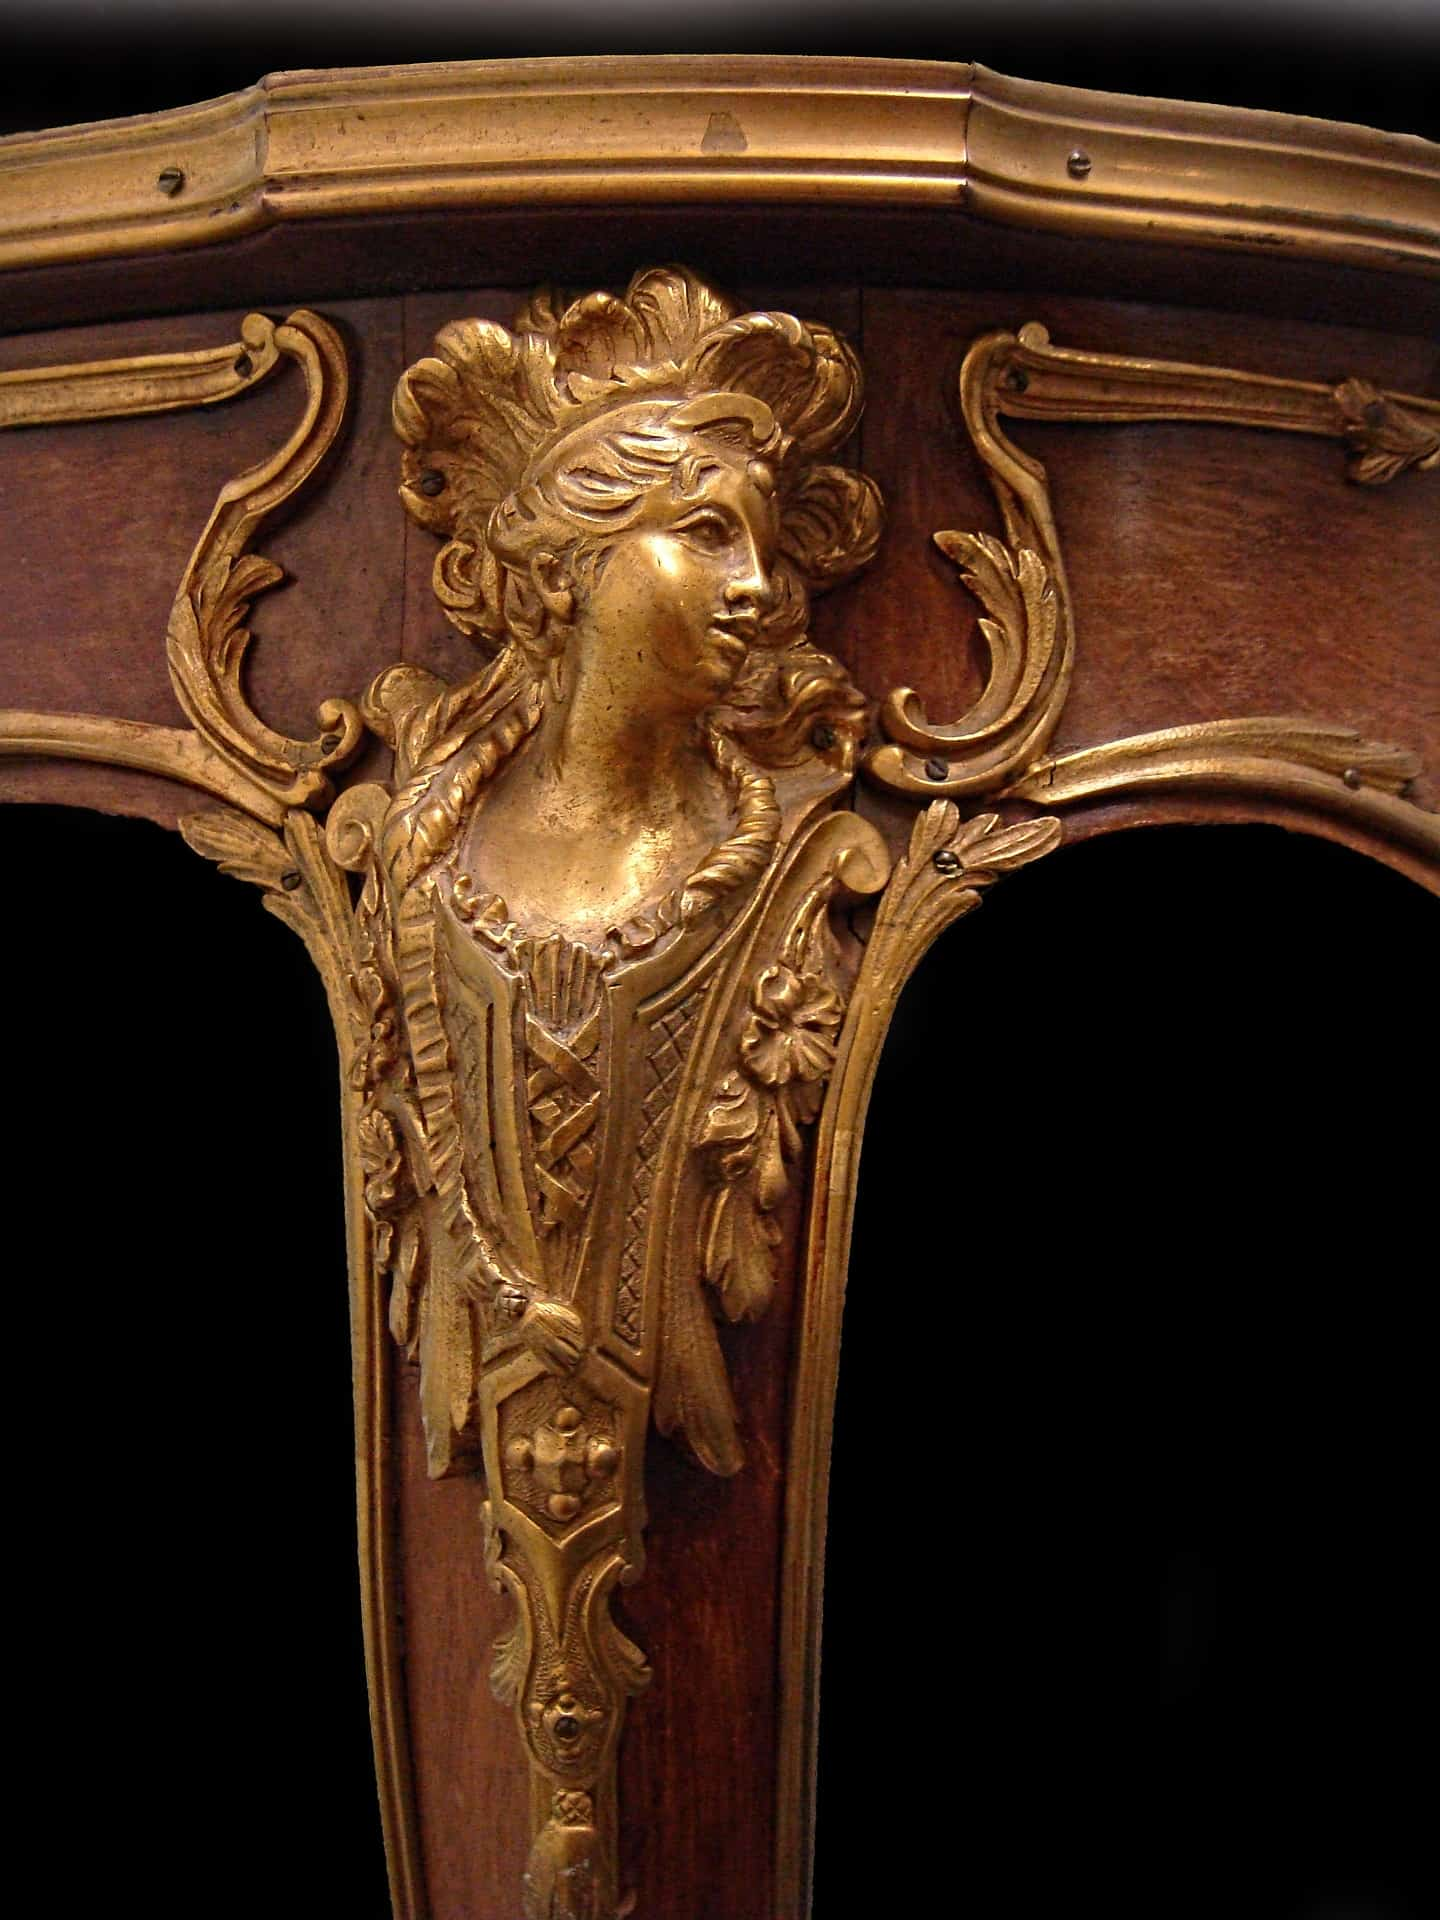 Leg of antique Louis French gilt bronze mounted desk appraisal